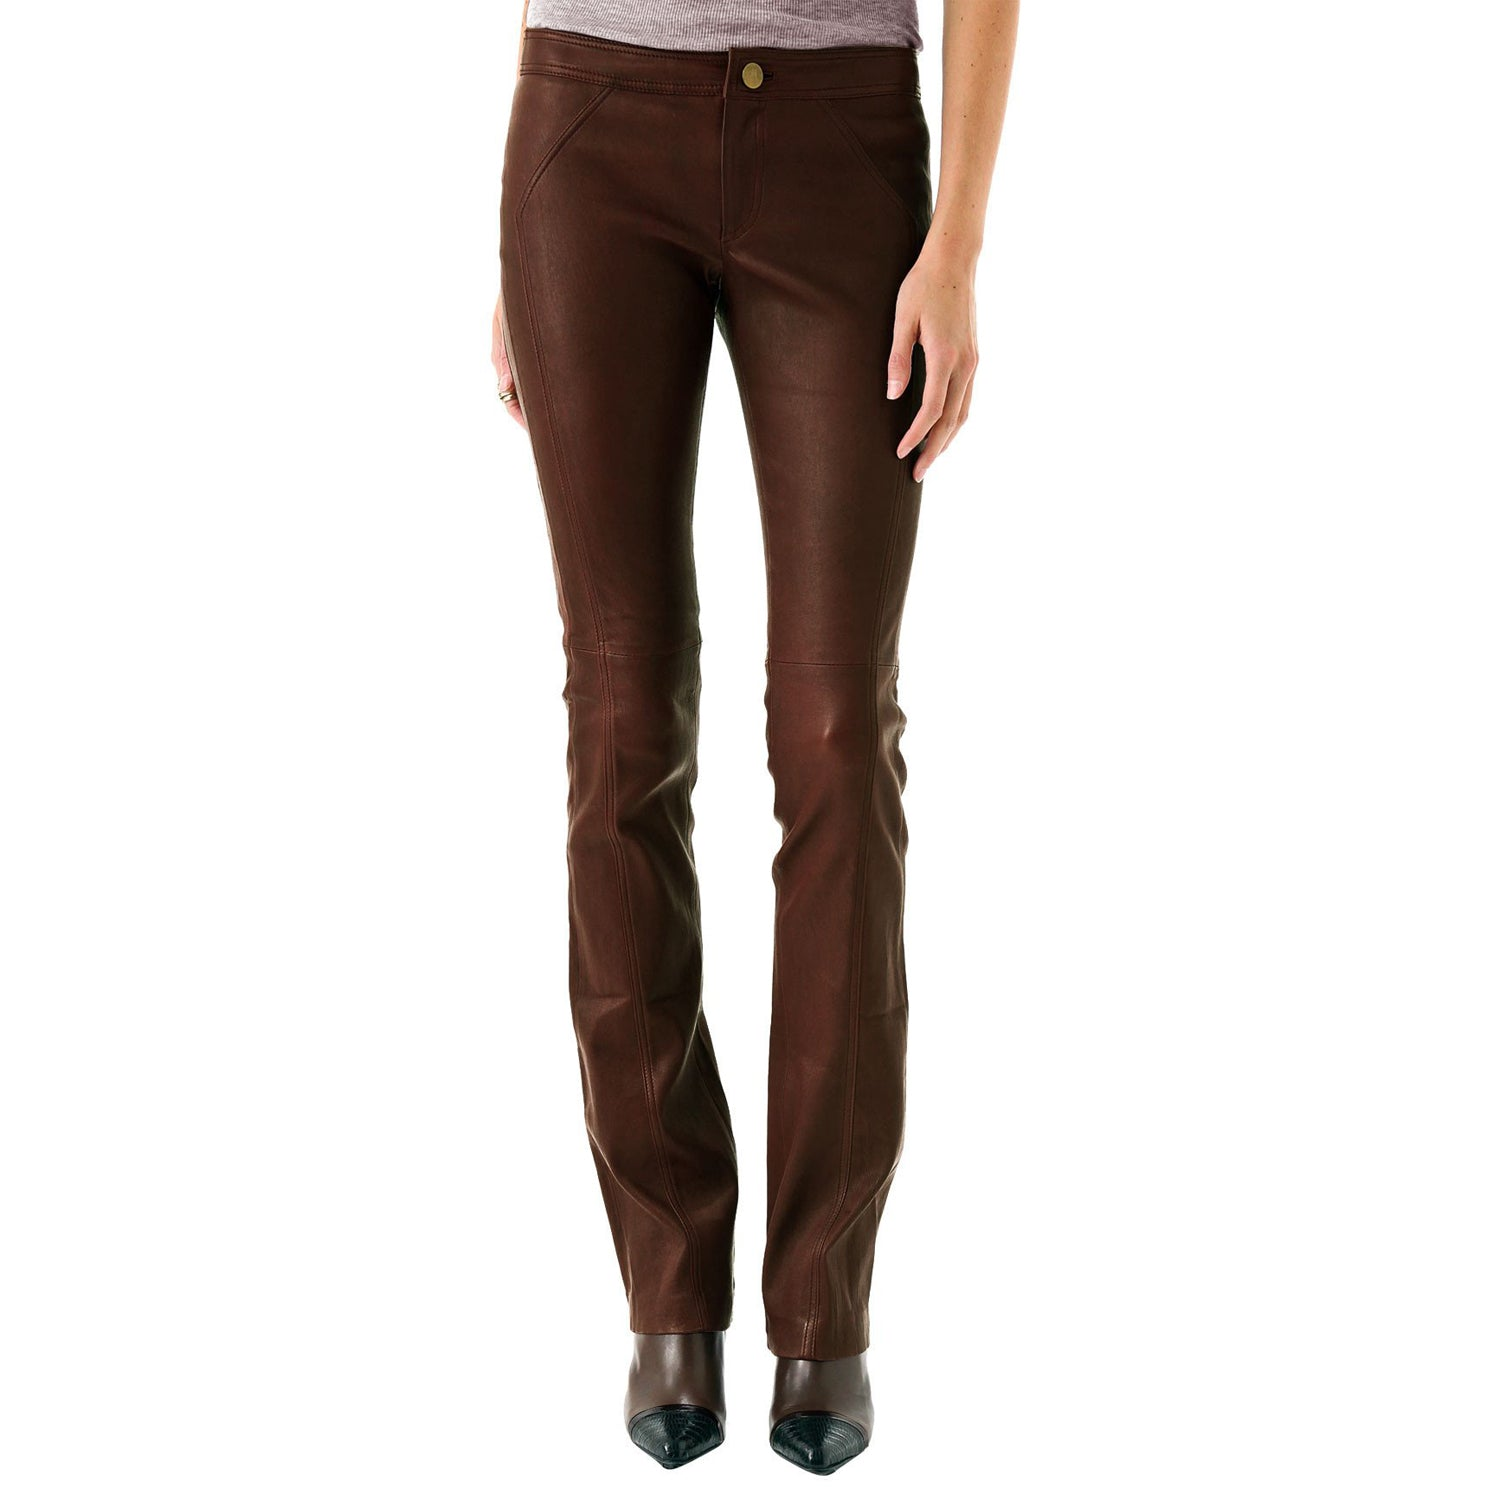 Business elegant leather pants (style #14) - Lusso Leather - 1